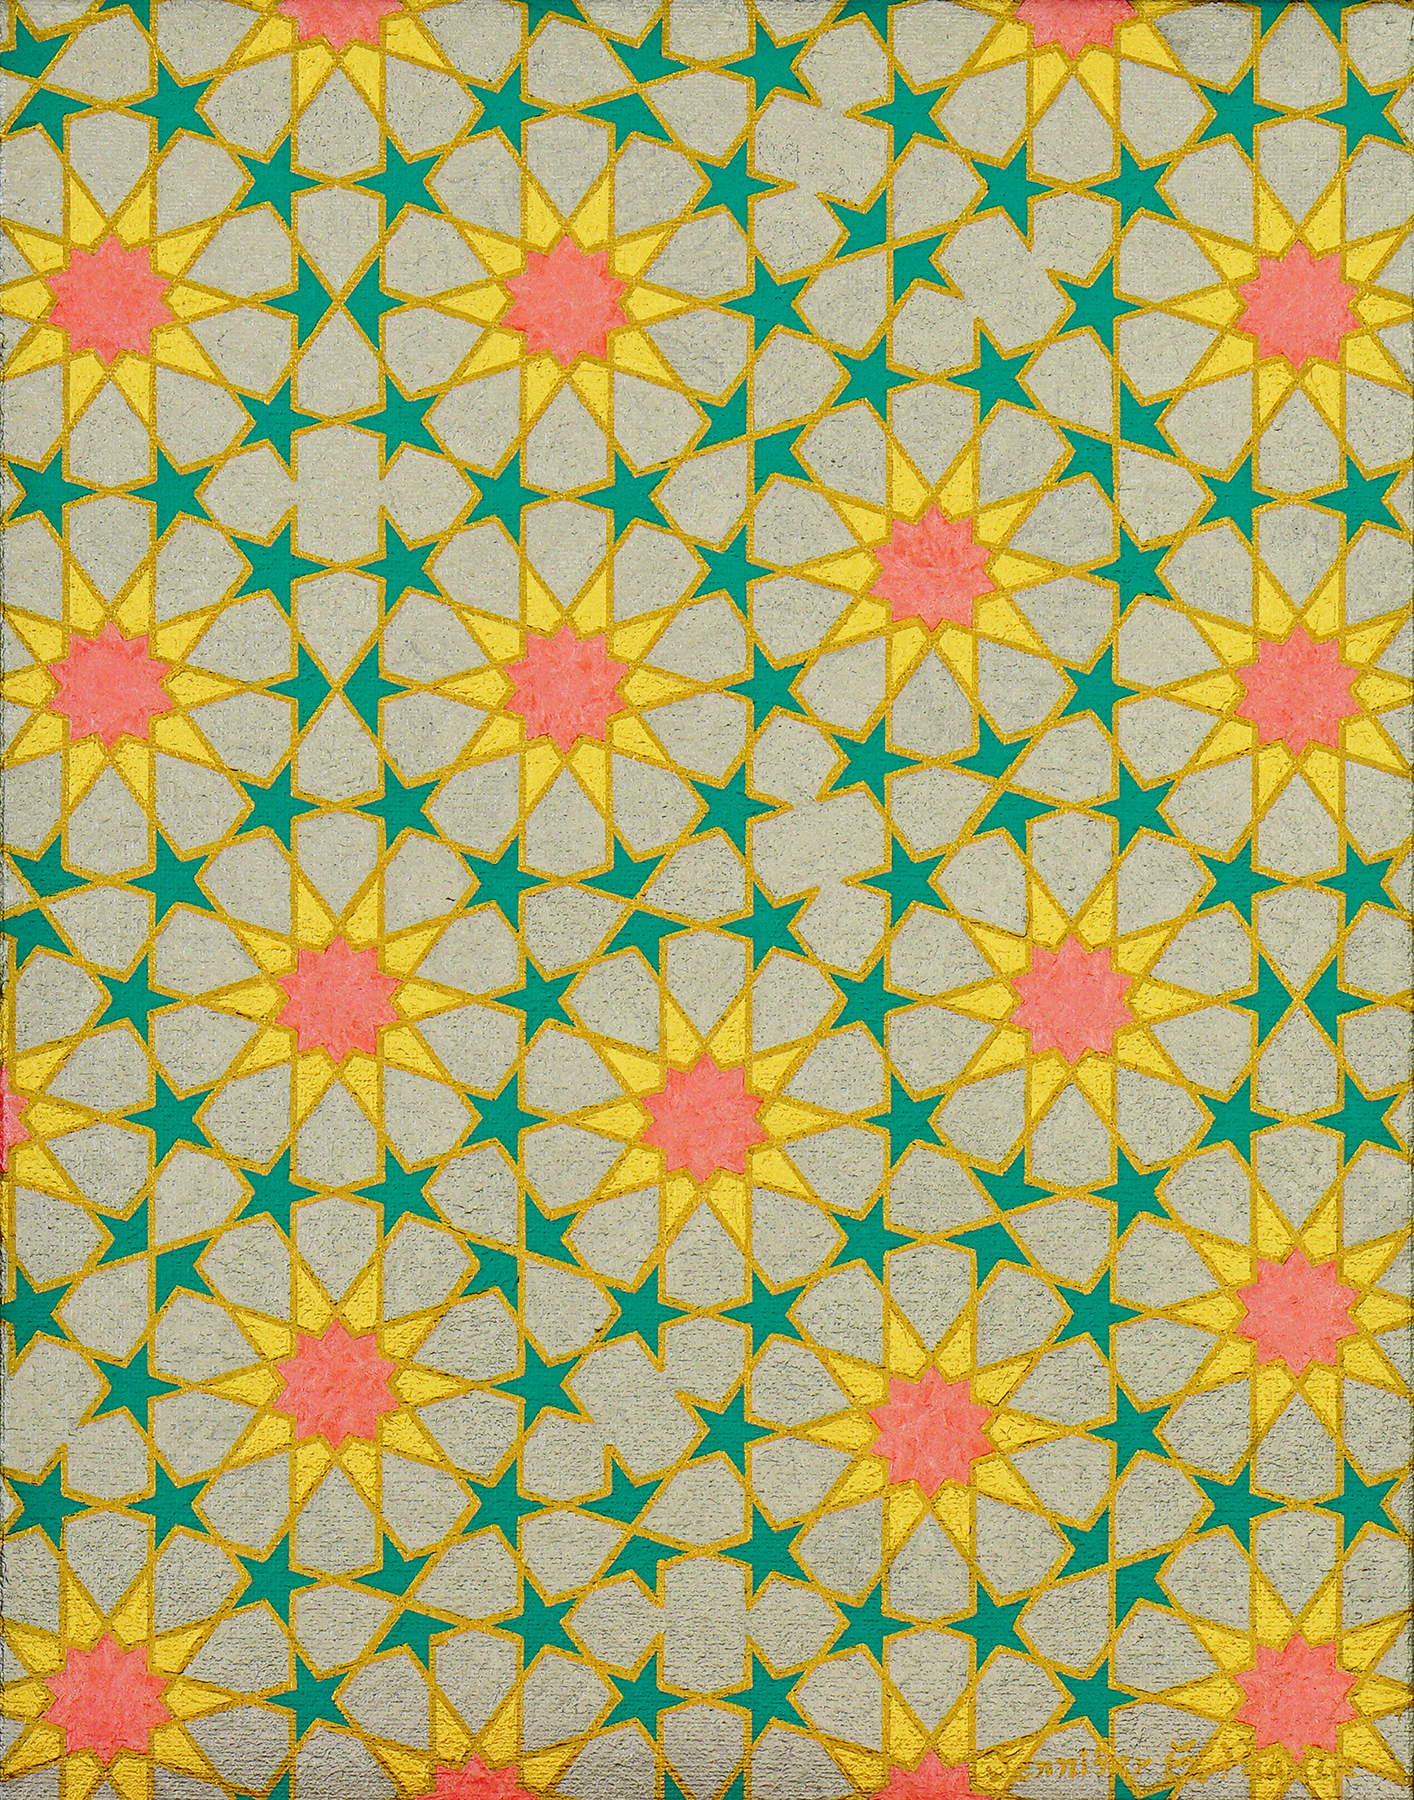 Painting of a Penrose tiling with an Islamic geometric motif